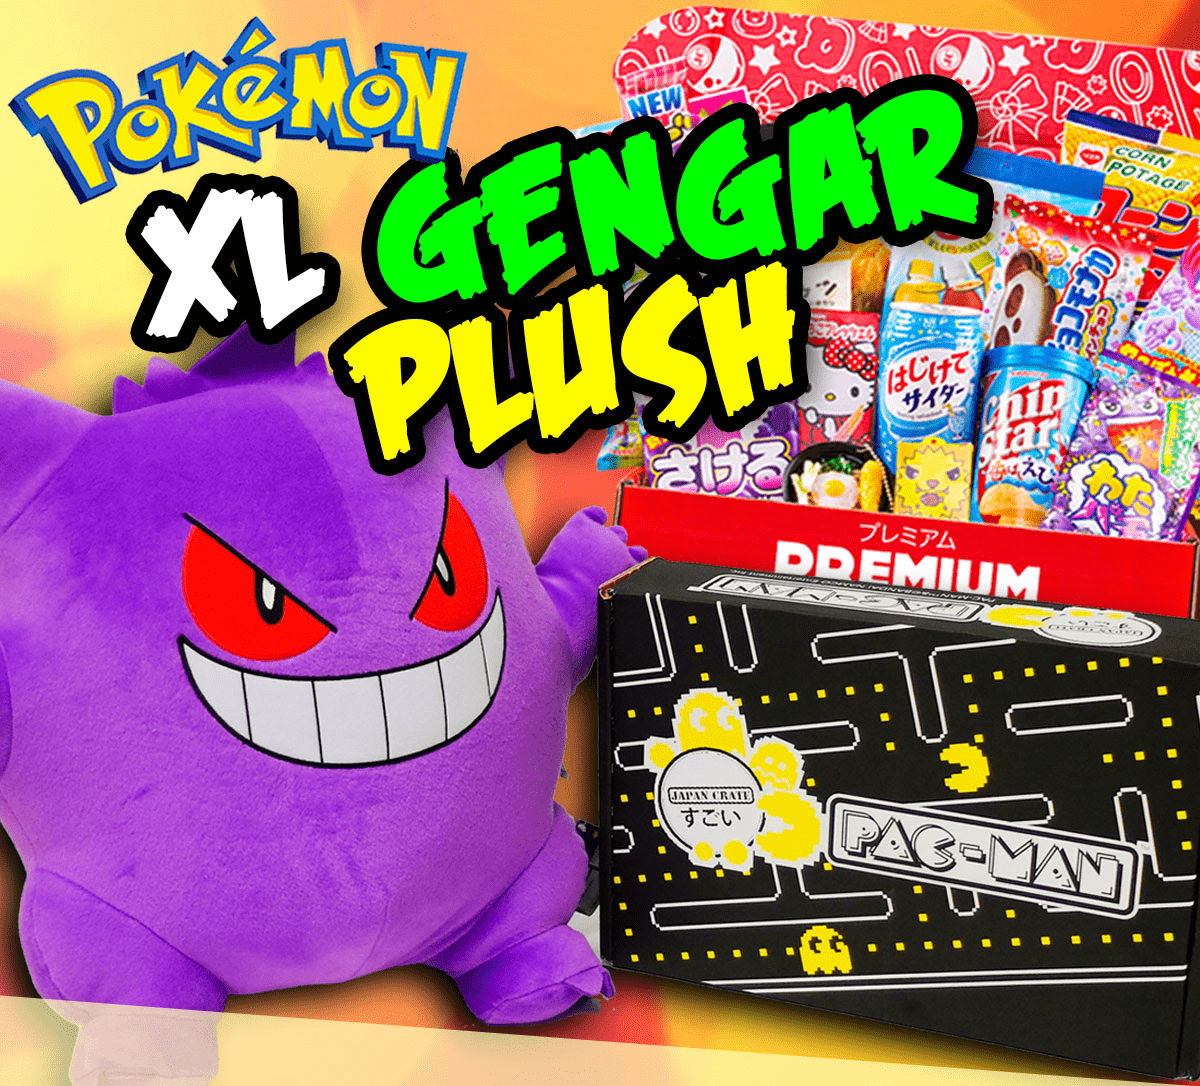 Japan Crate Coupon: Get FREE XL Gengar Plush With 12-Month Premium Subscription!